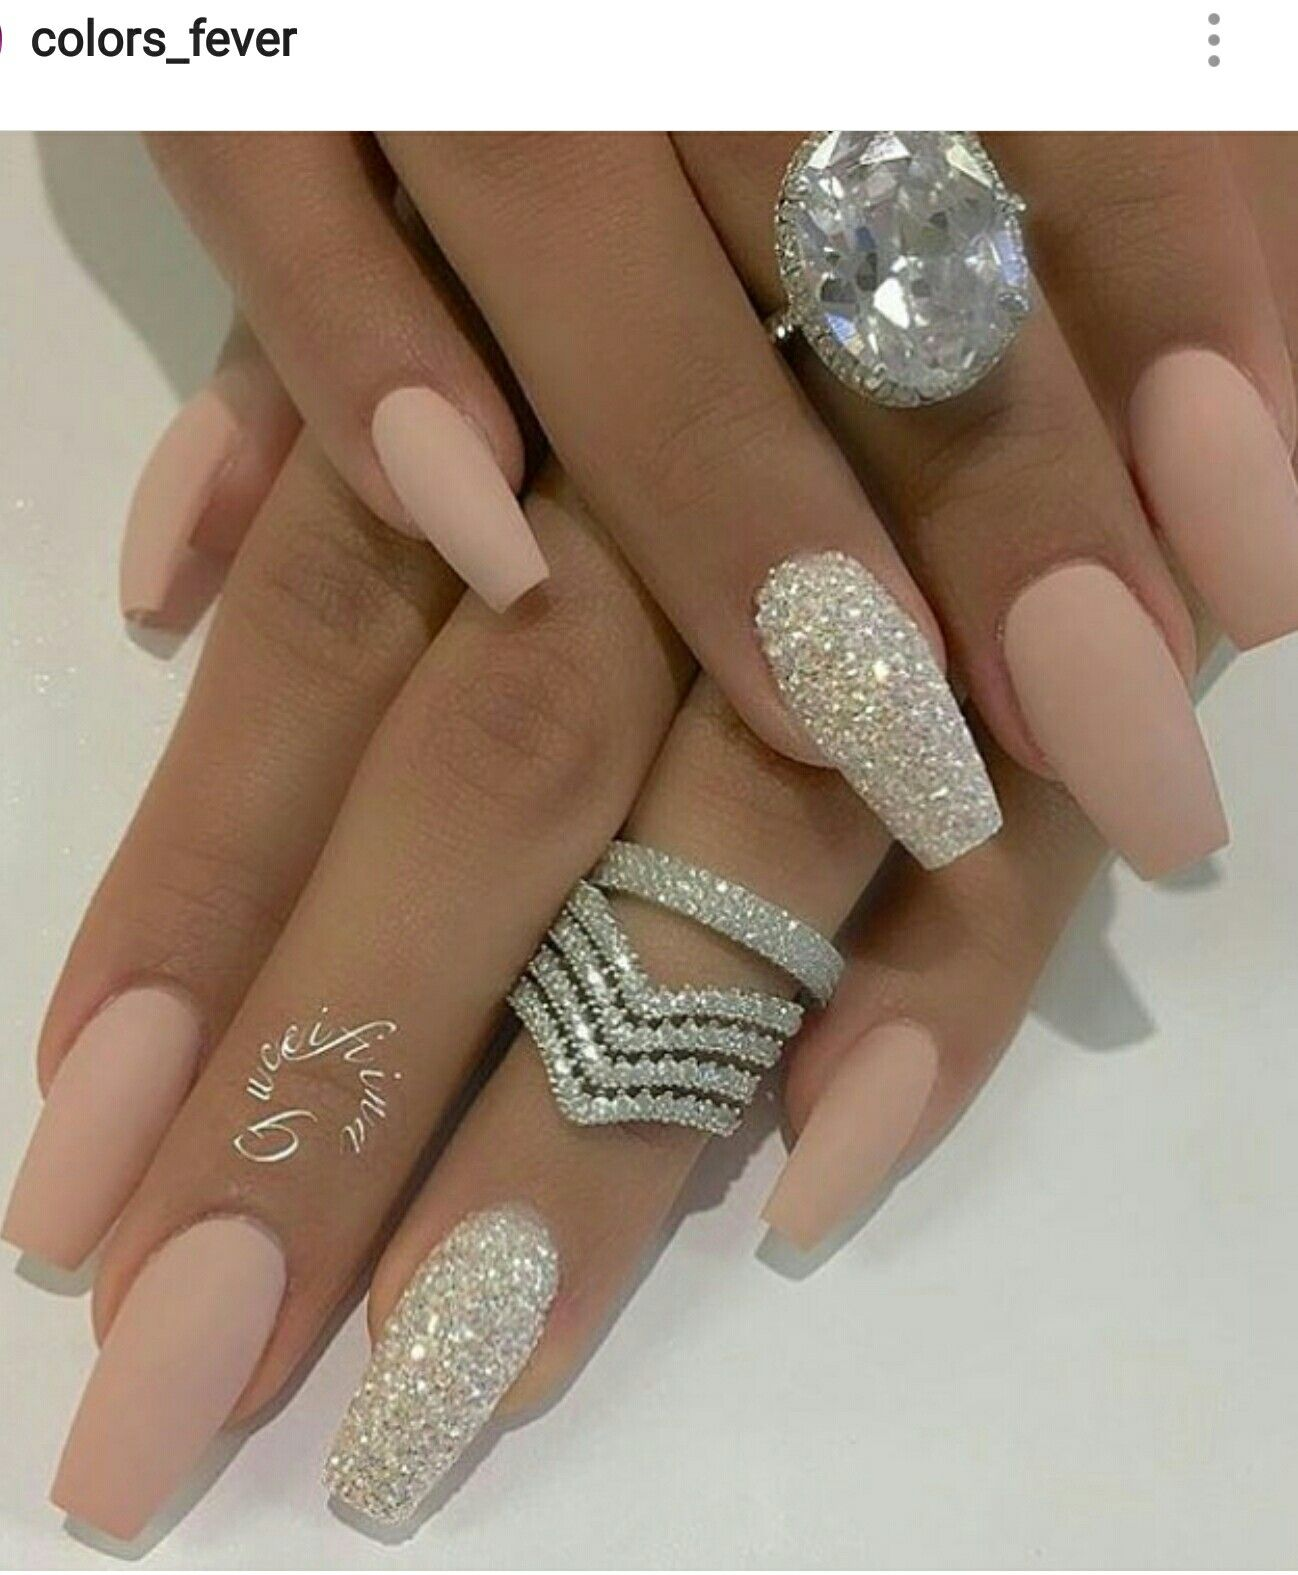 Matte Nail Salon Near Me : matte, salon, Please, Follow, @SlayBeauty101, Awesome, Pins!, Matte, Nails, Design,, Bling, Nails,